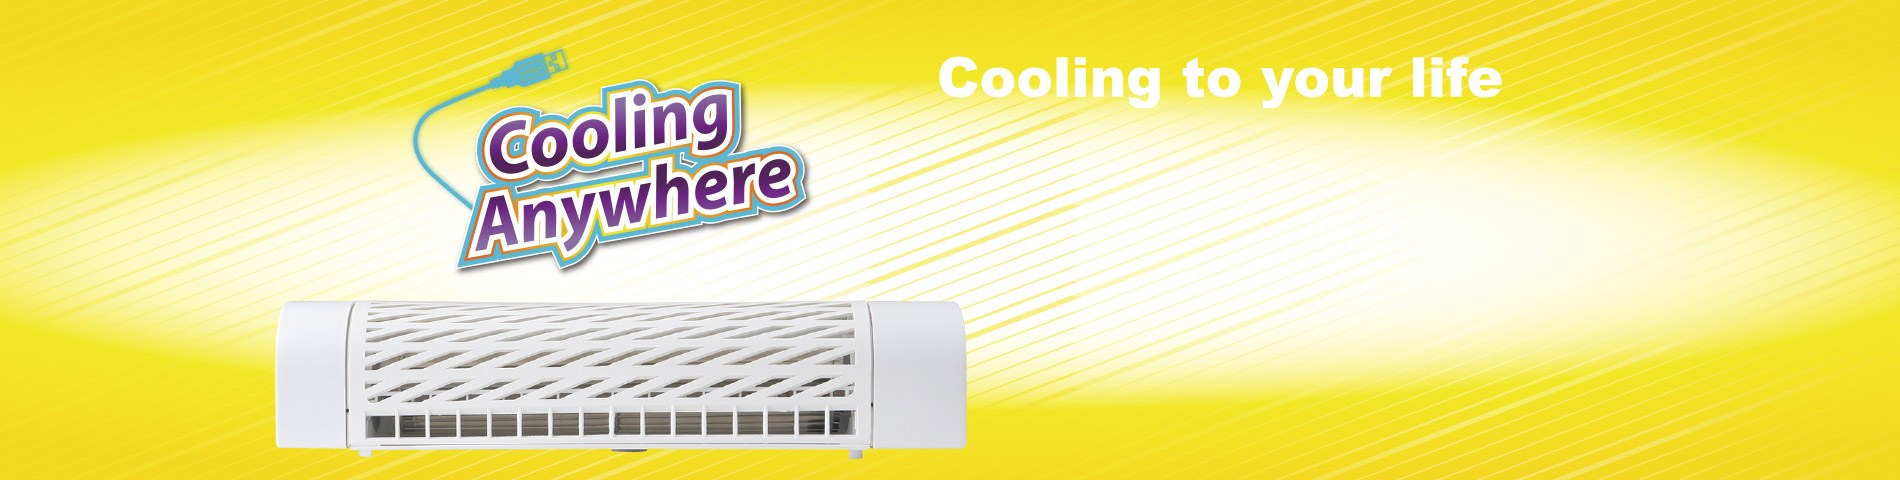 Cooling Fan Anywhere For Better Cool Life